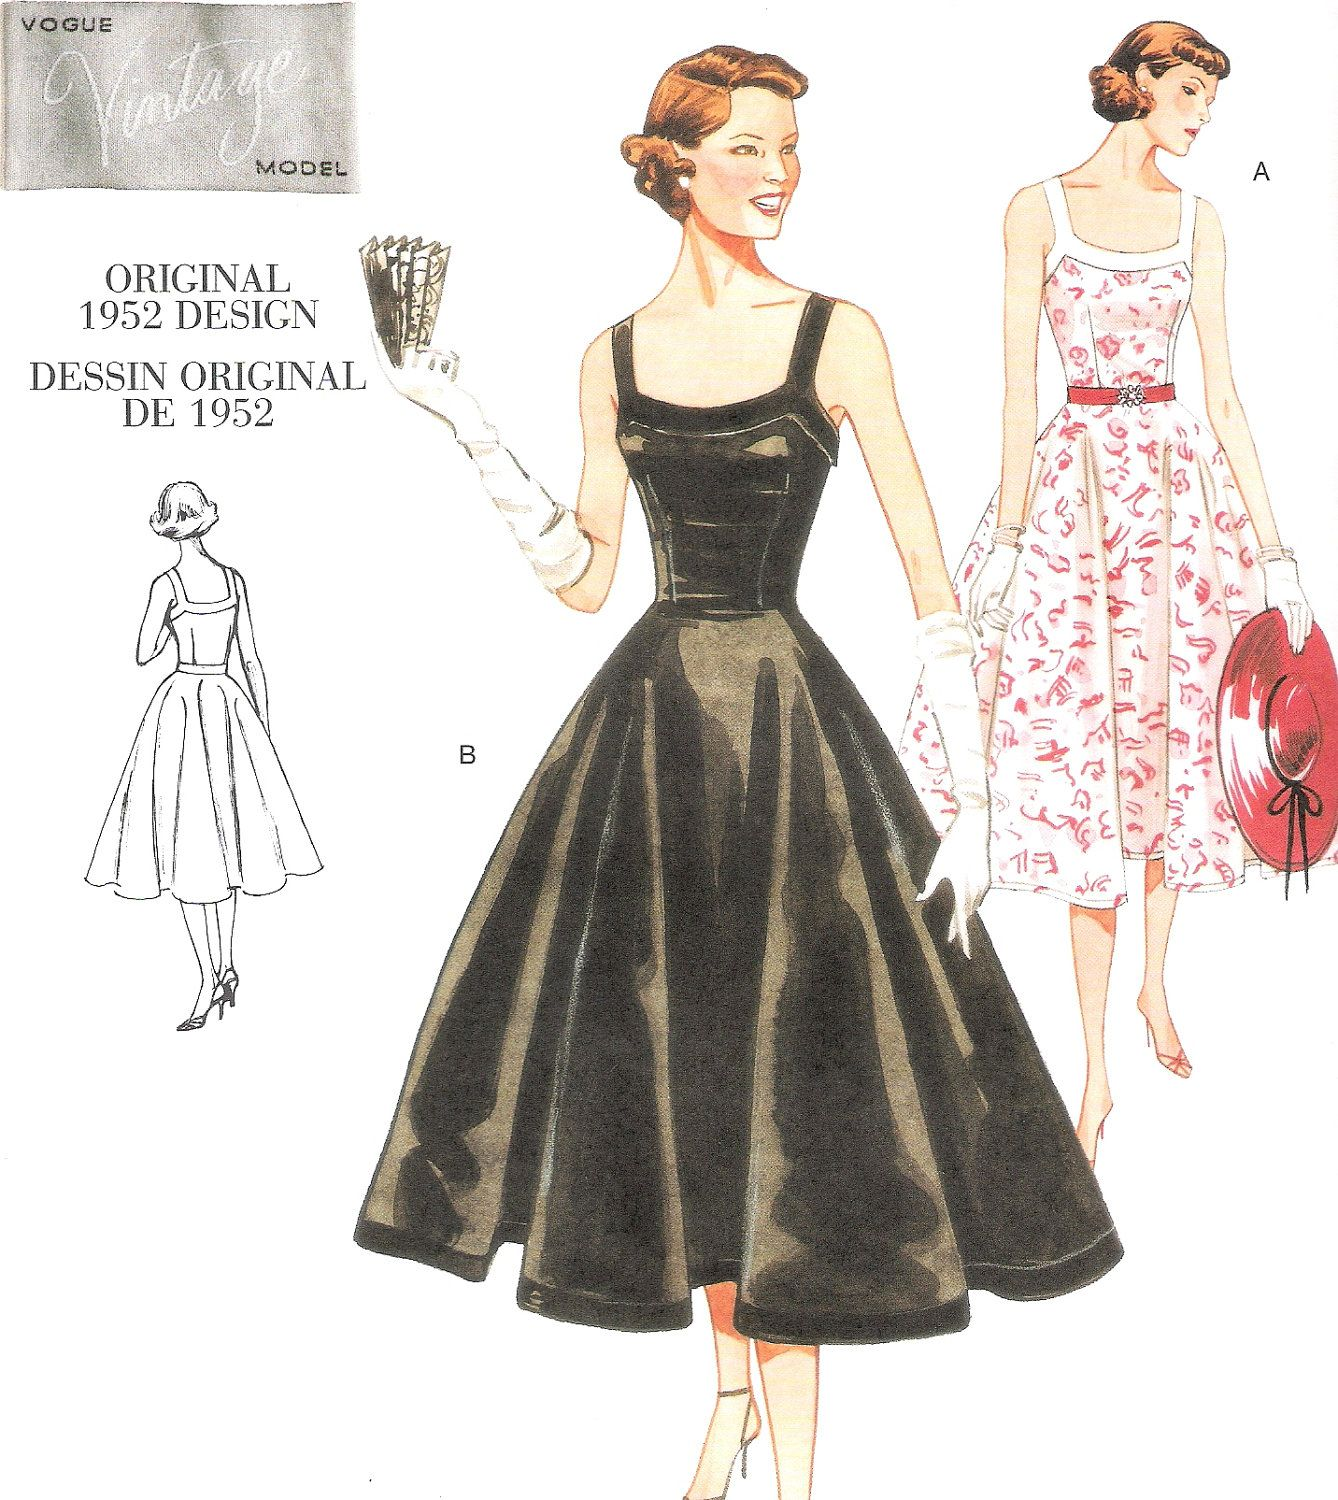 Vintage Vogue 50s Swing Dress Sewing Pattern Sizes 12 - 16 Rock'n ...